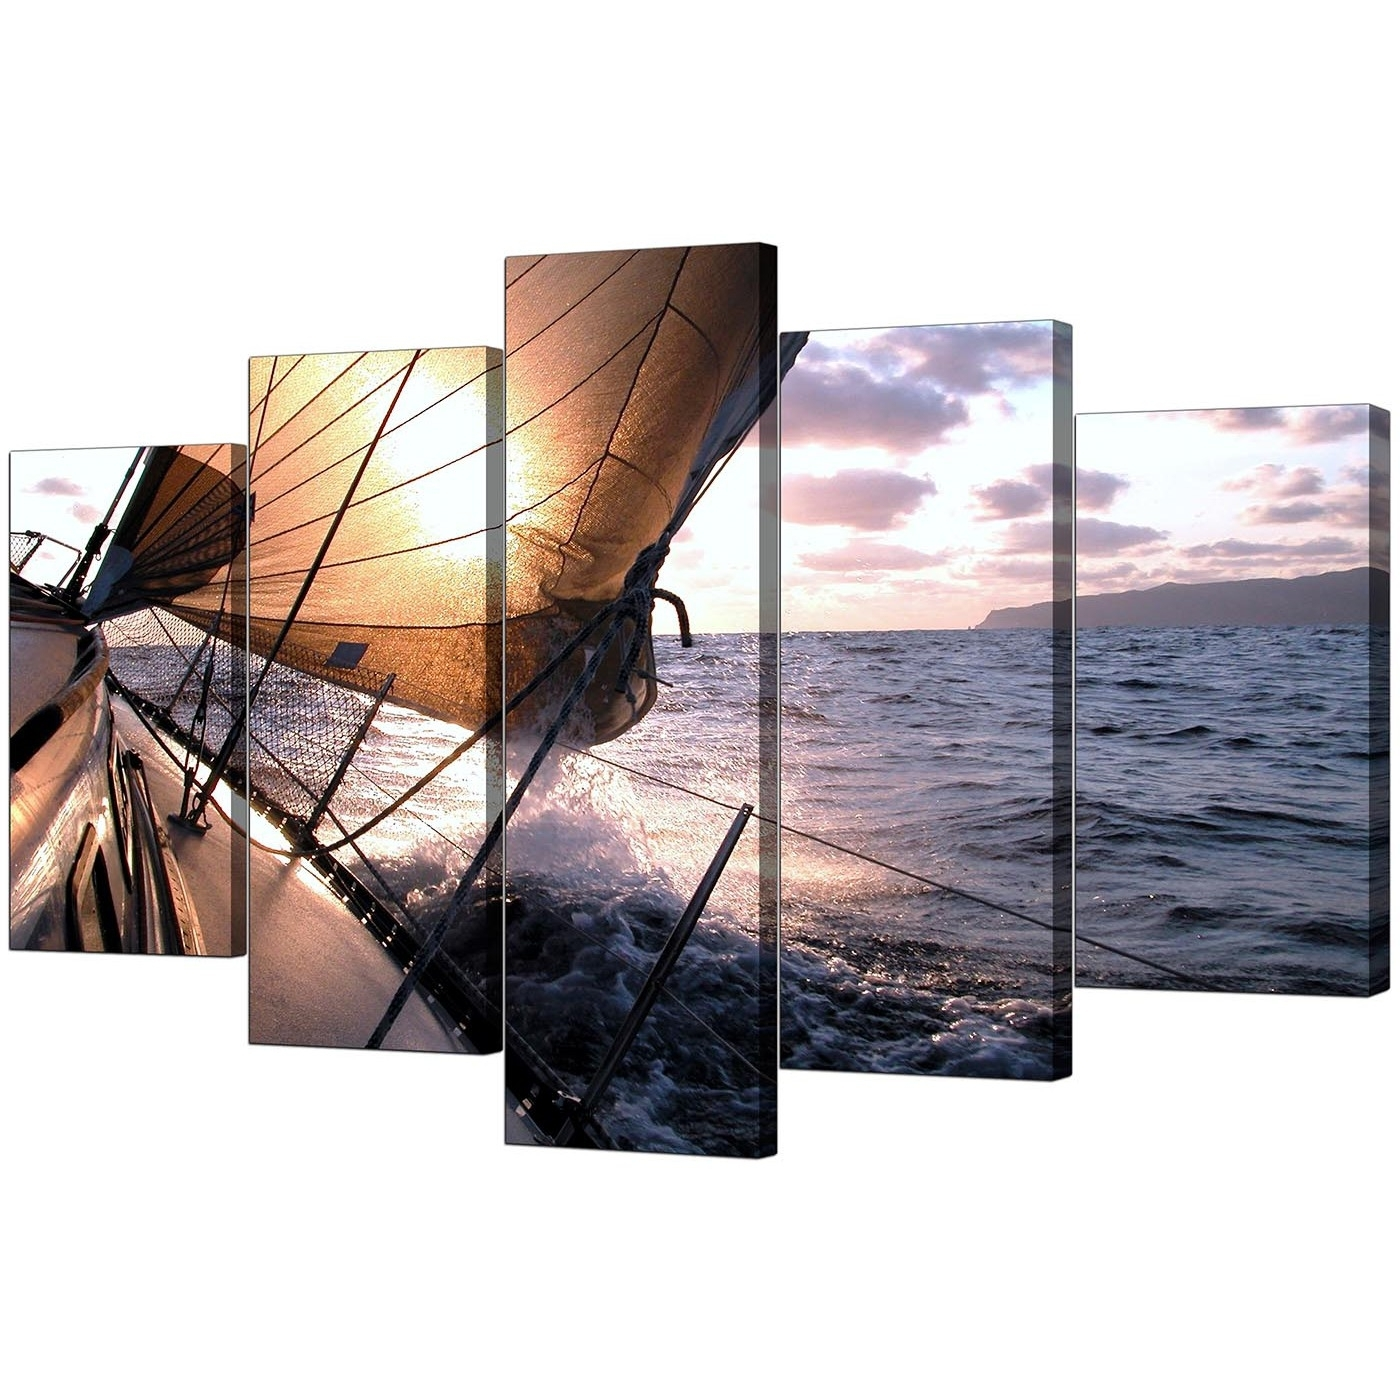 Boat Canvas Prints Uk For Your Living Room – 5 Piece Intended For Recent 5 Piece Wall Art (View 14 of 15)